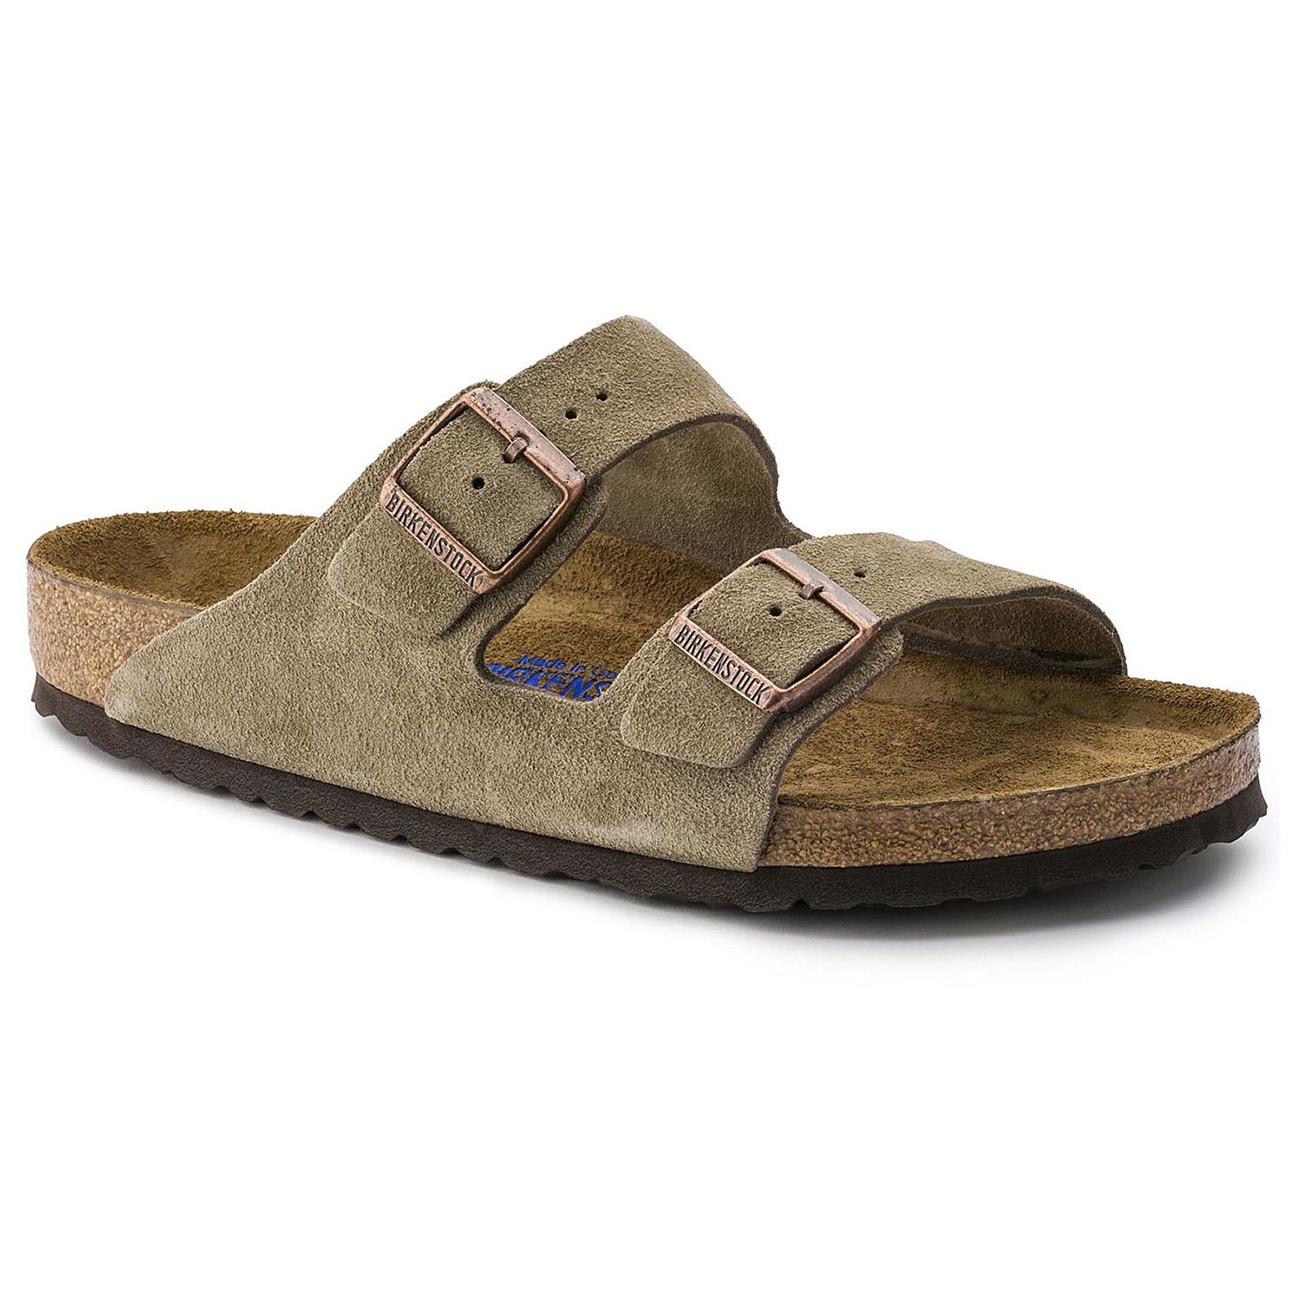 Unisex Adults Birkenstock Arizona Soft Footbed Suede